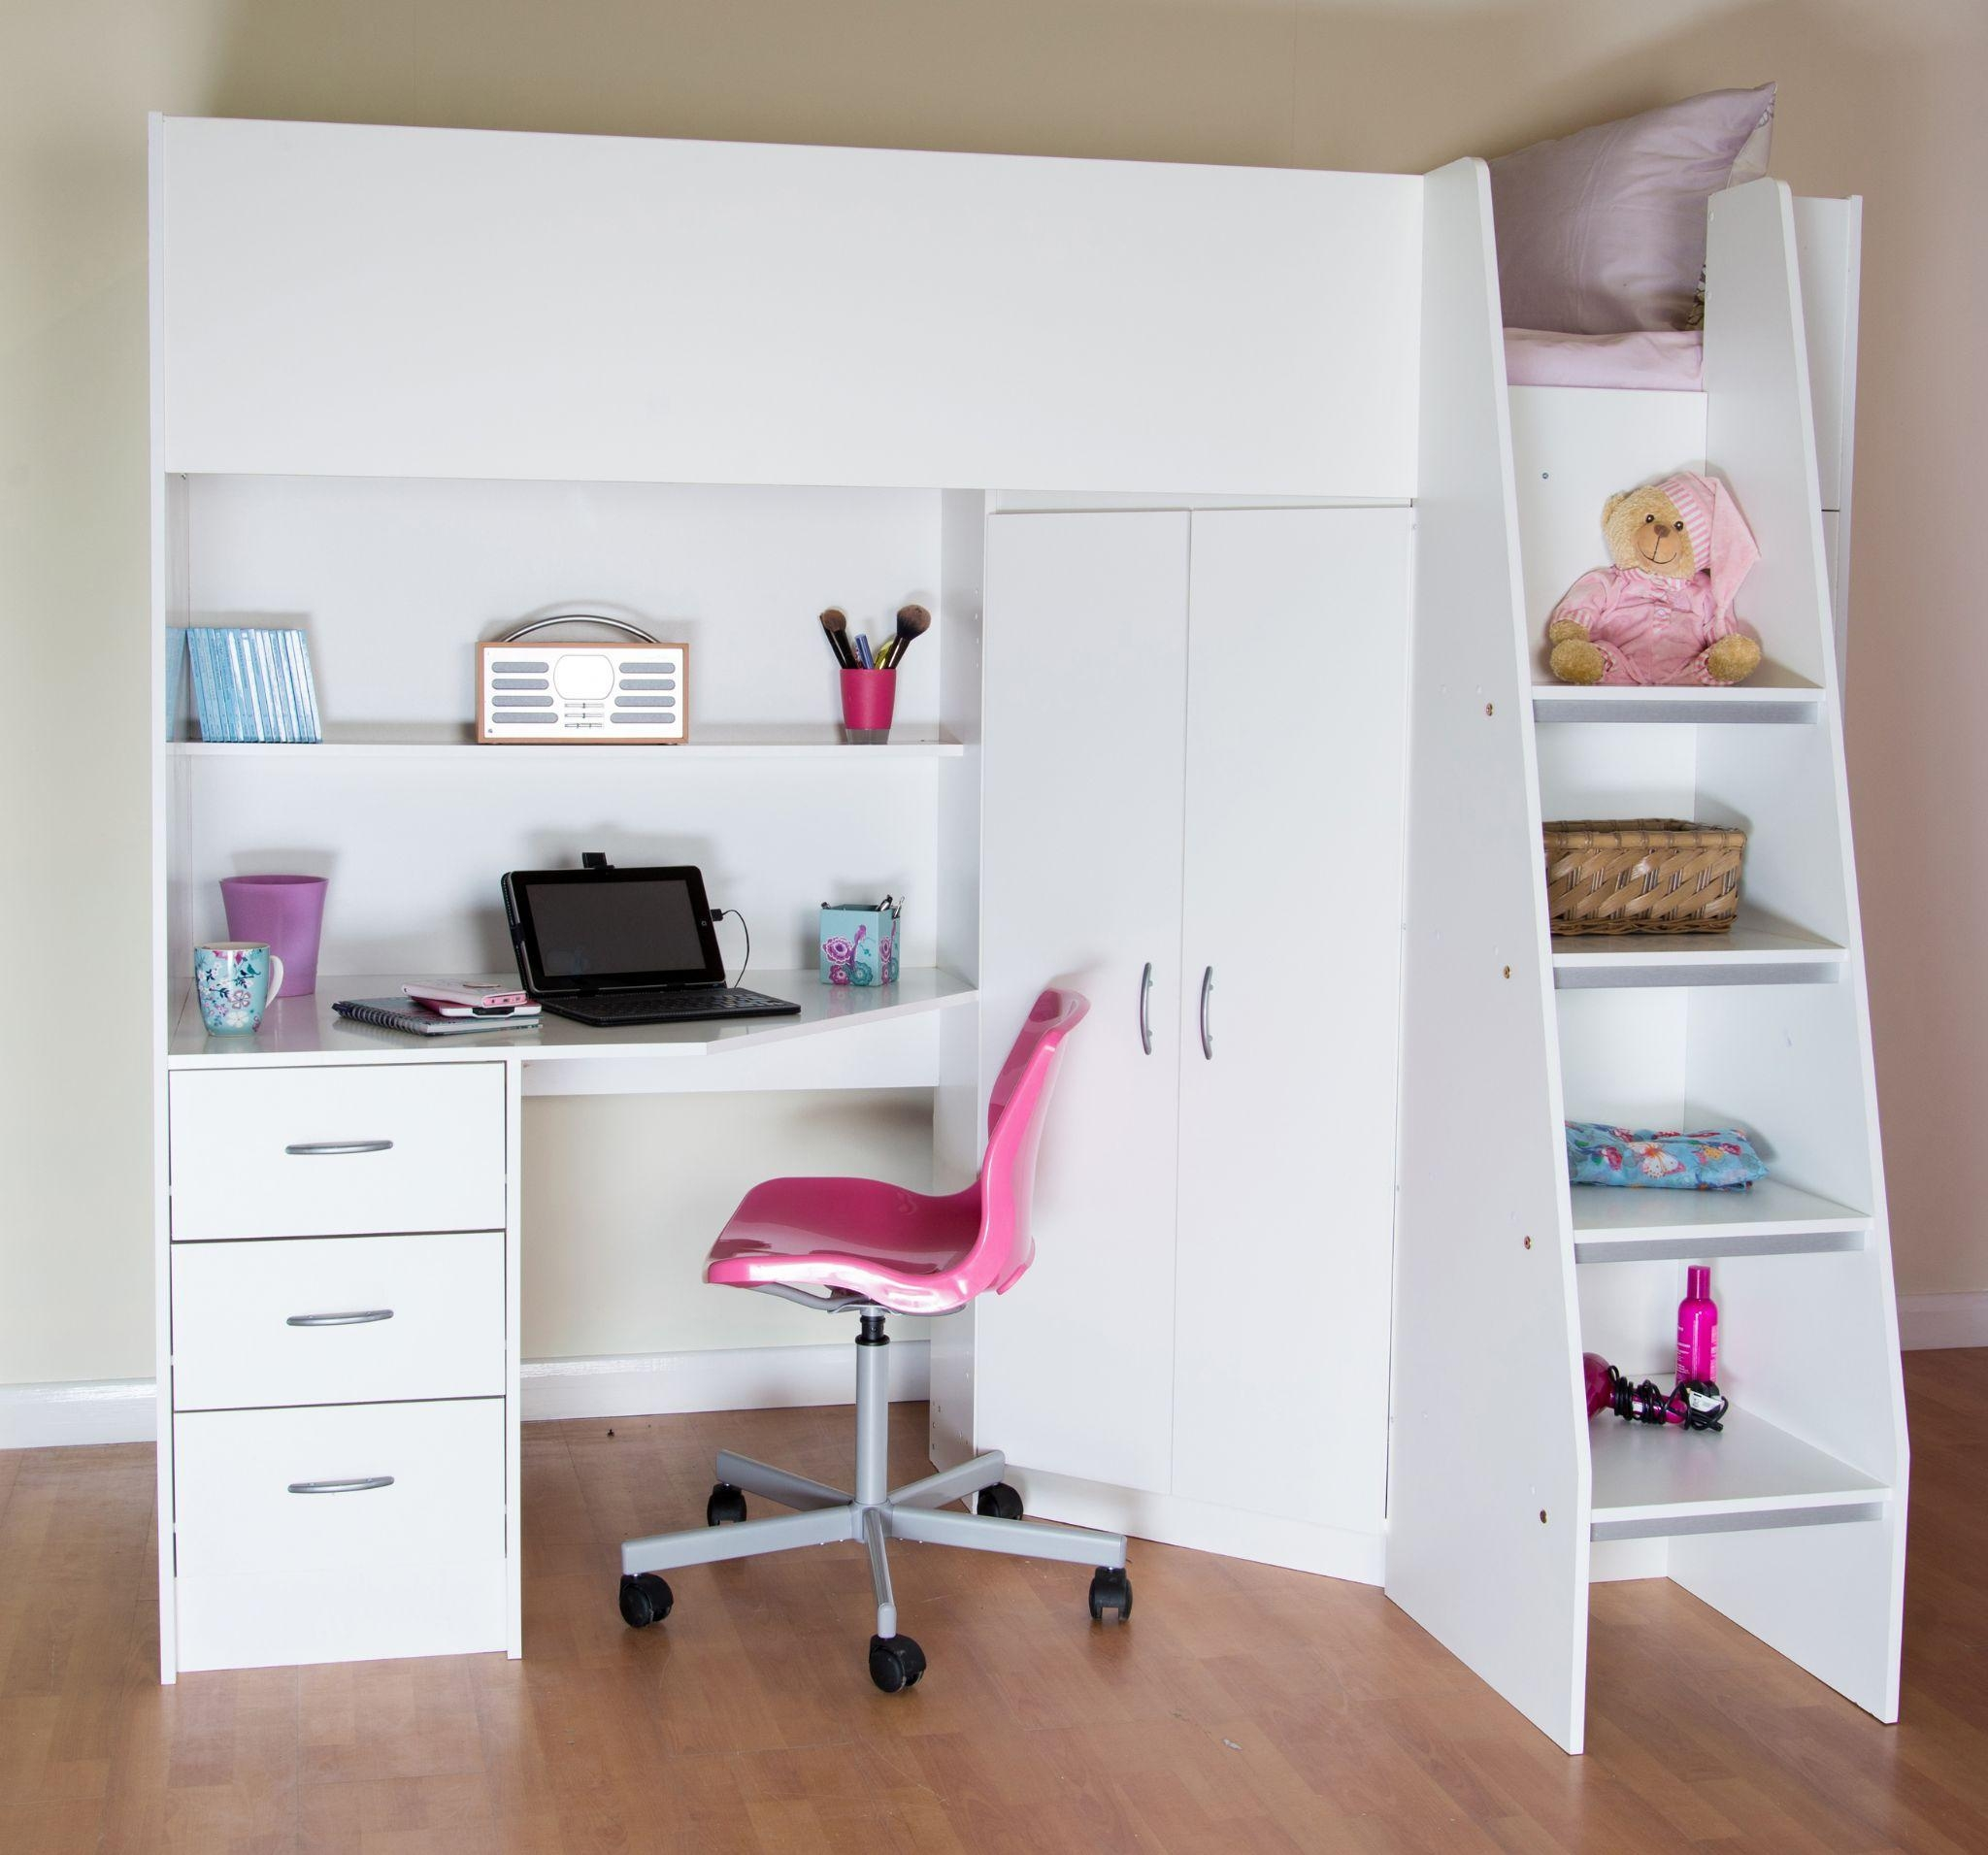 Cabin Beds, Childrens And Teenagers Beds, Within High Sleeper With Sofa And Desk (Image 2 of 20)